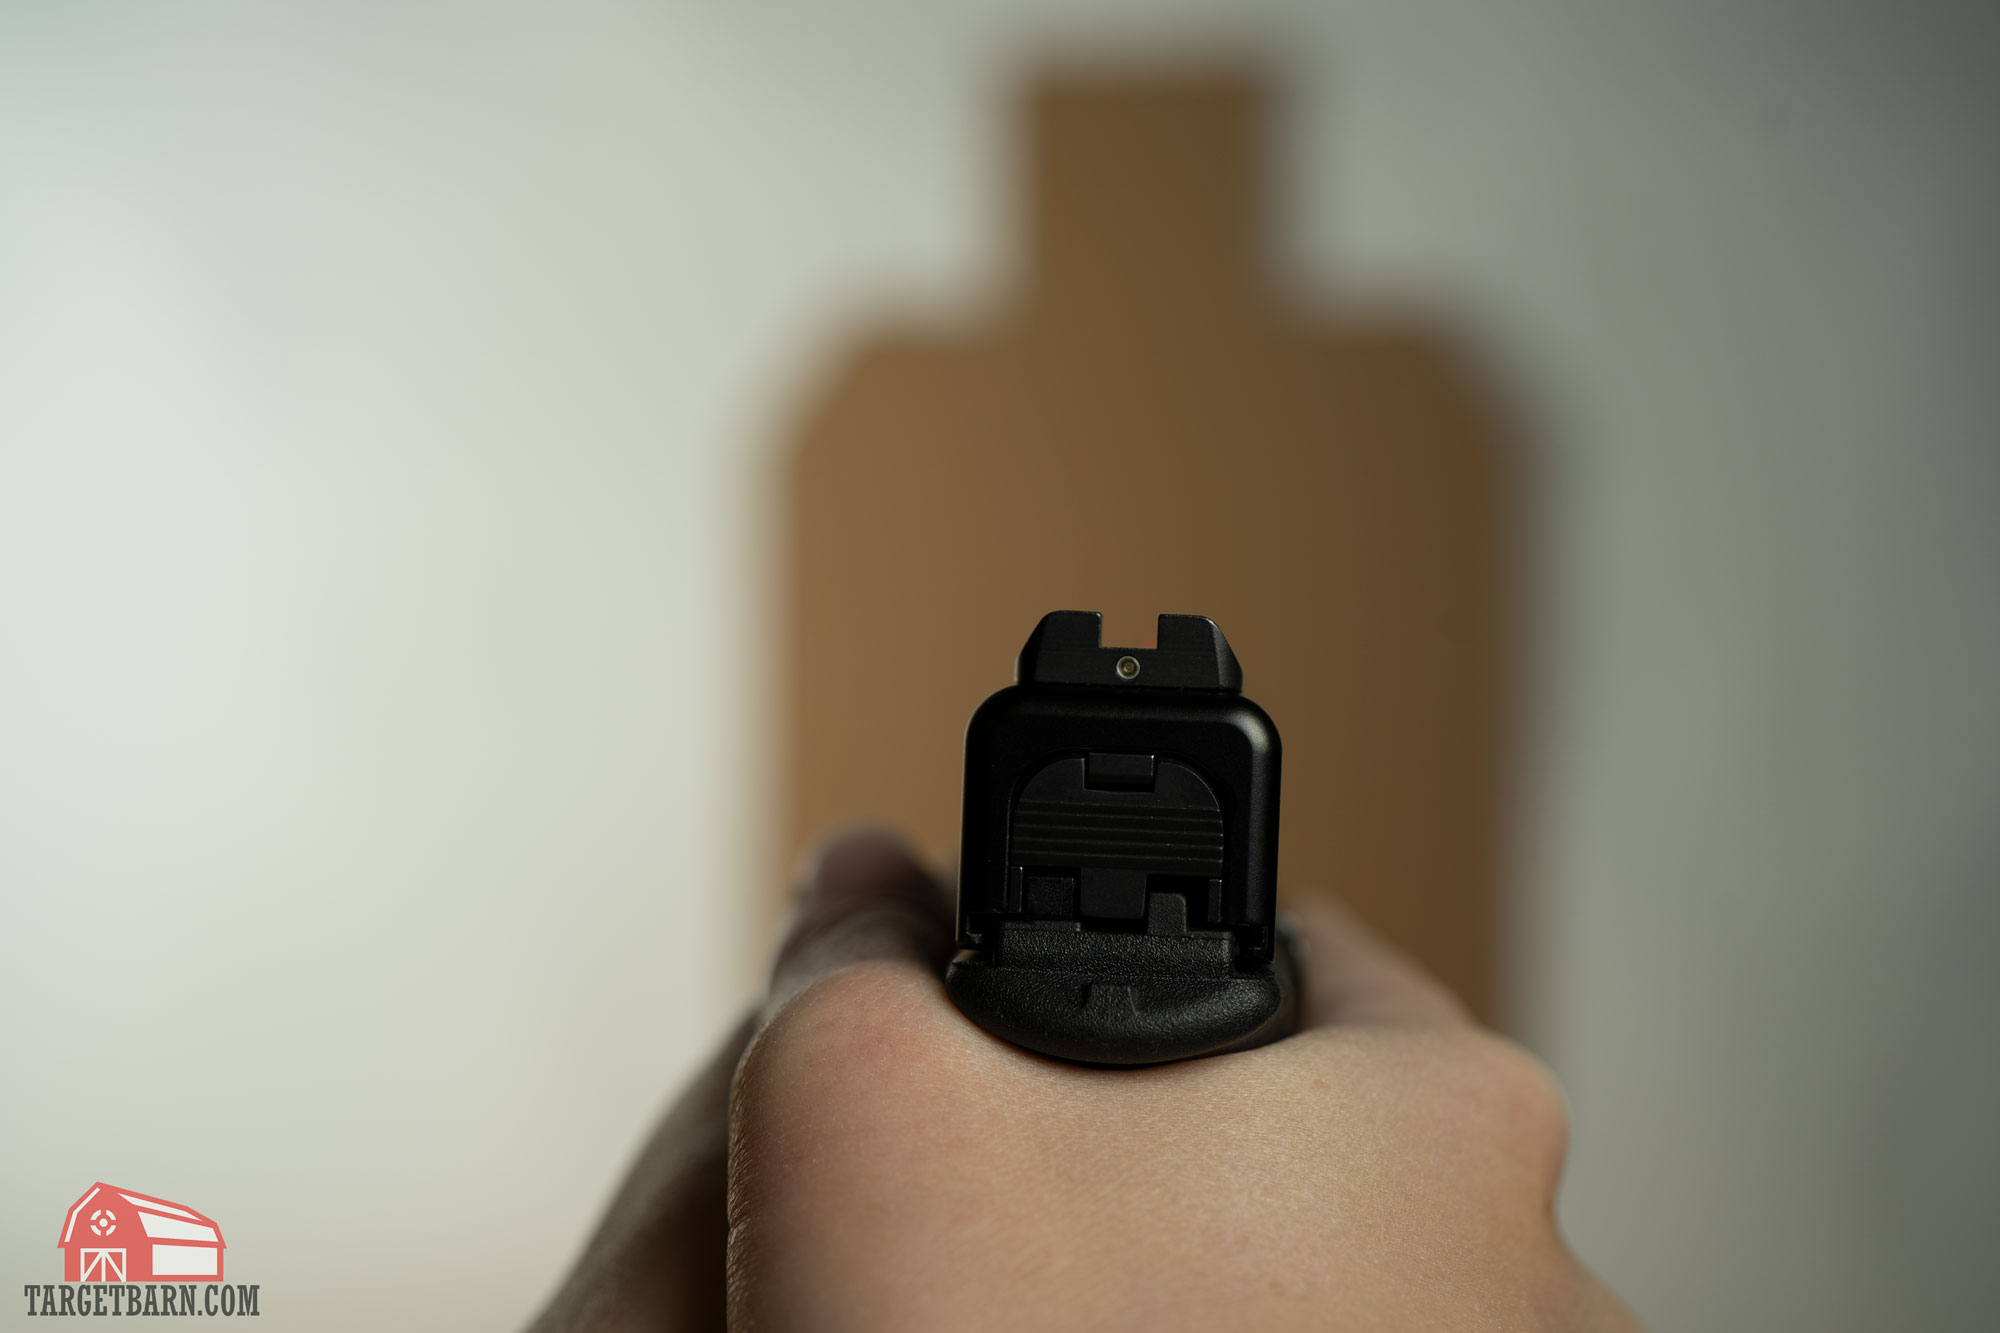 with gross index sight picture, the reference is on the back of the gun